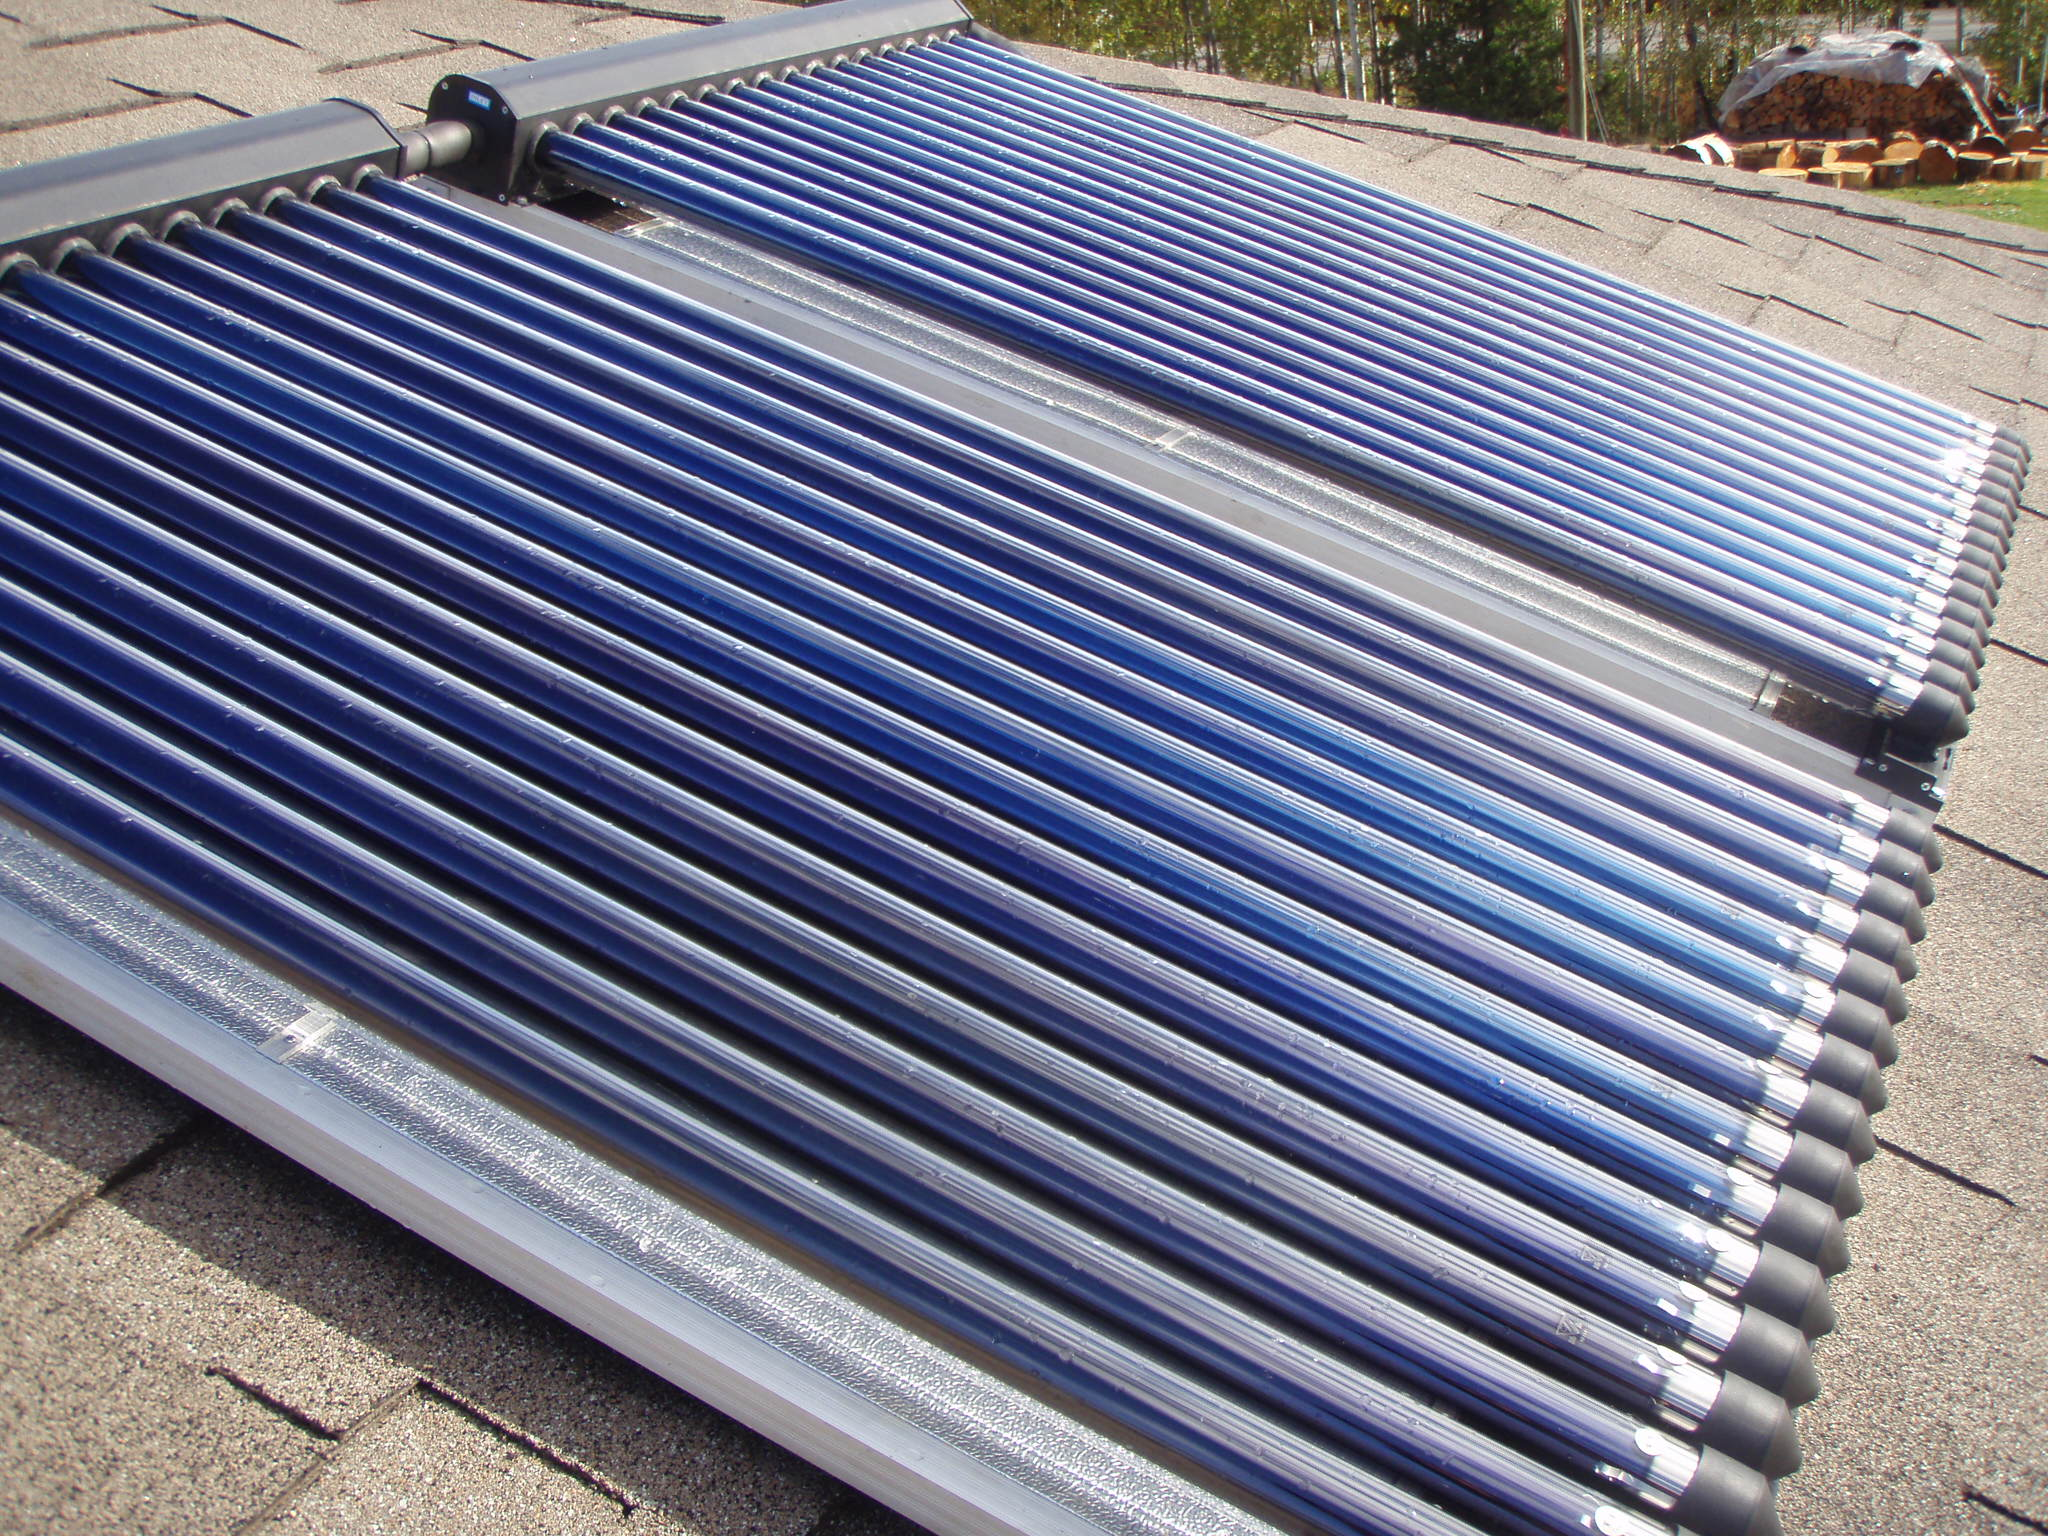 Wood Heat and Solar Thermal – Perfect Match